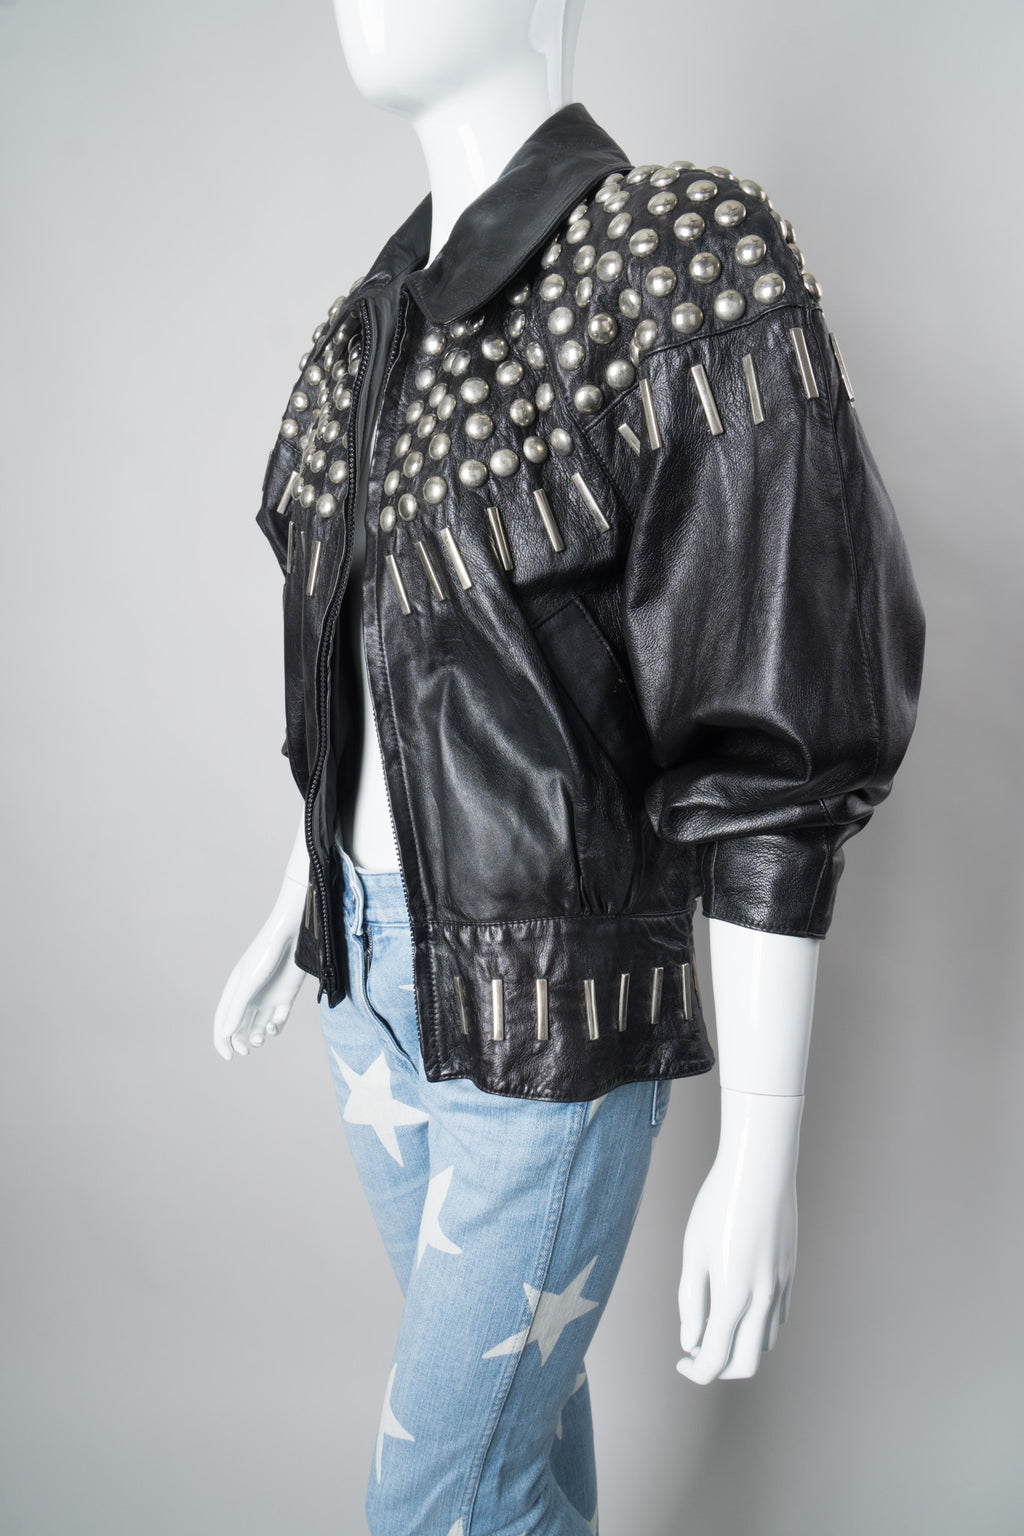 Begedor Dome Ball Stud Leather Jacket